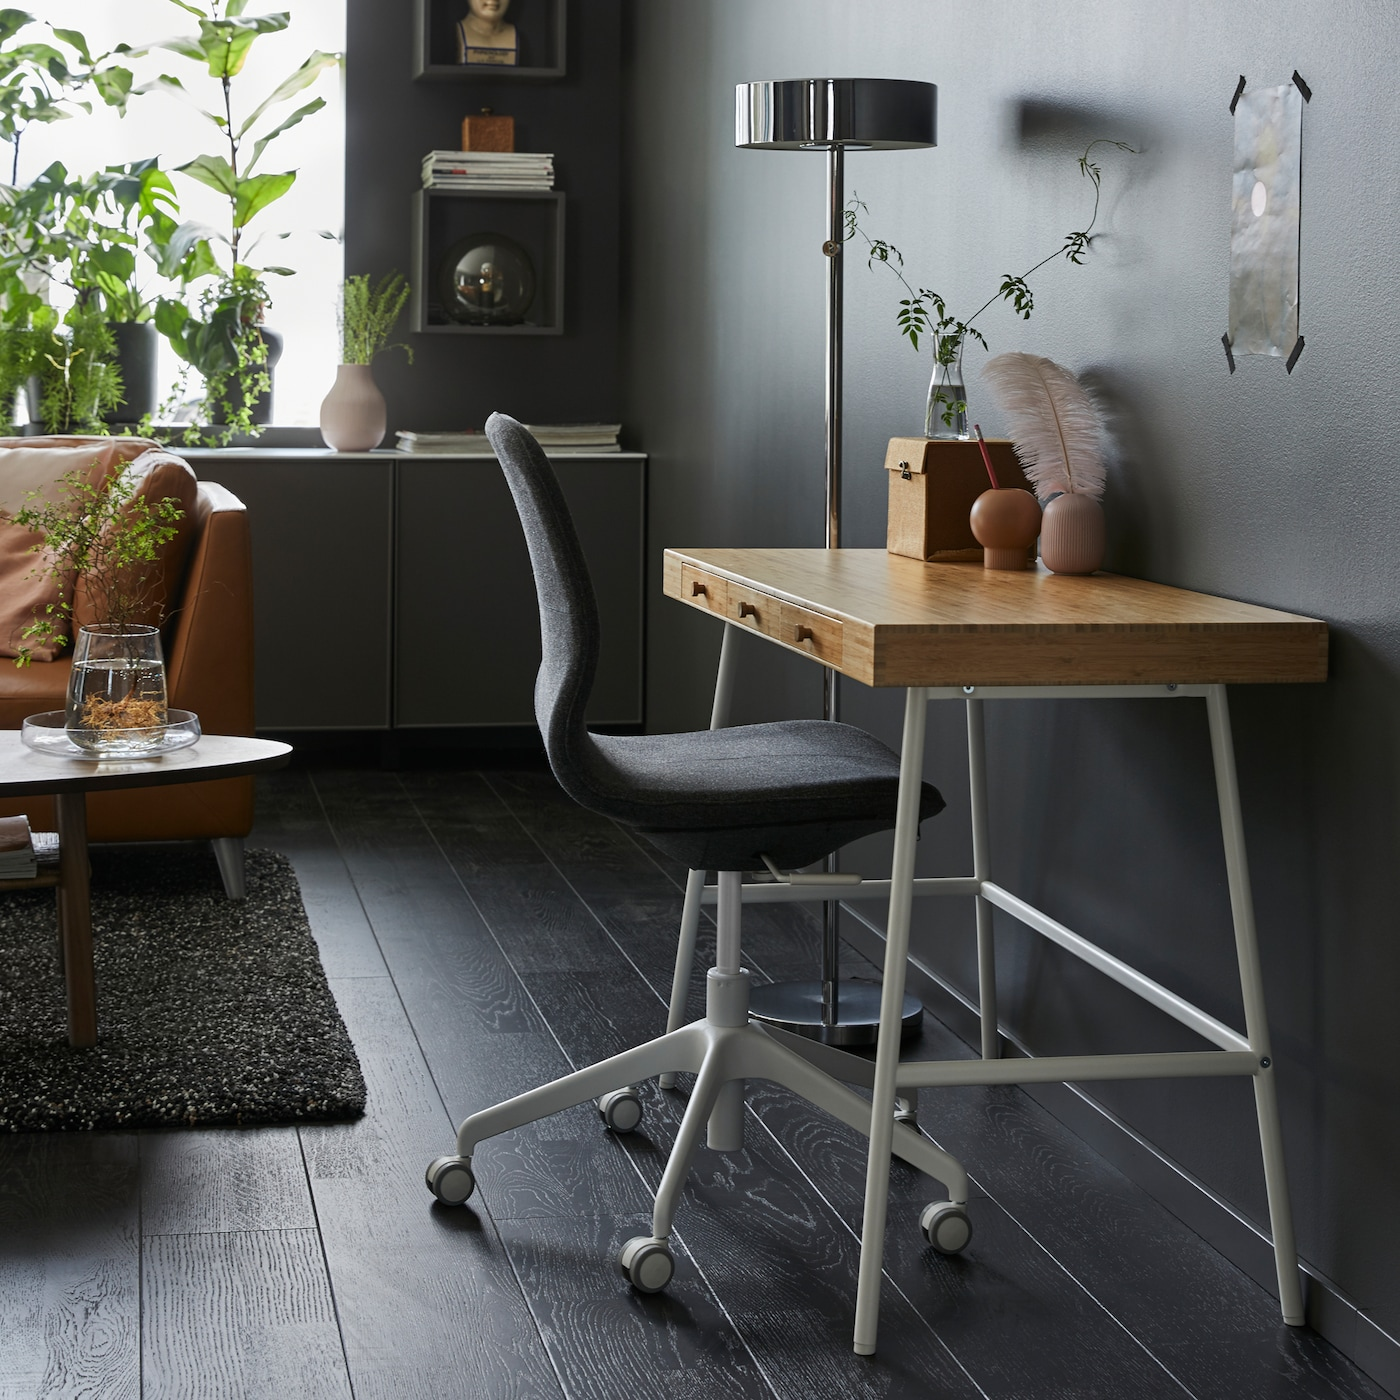 Home office with LILLÅSEN work table, a swivel chair and floor lamp.